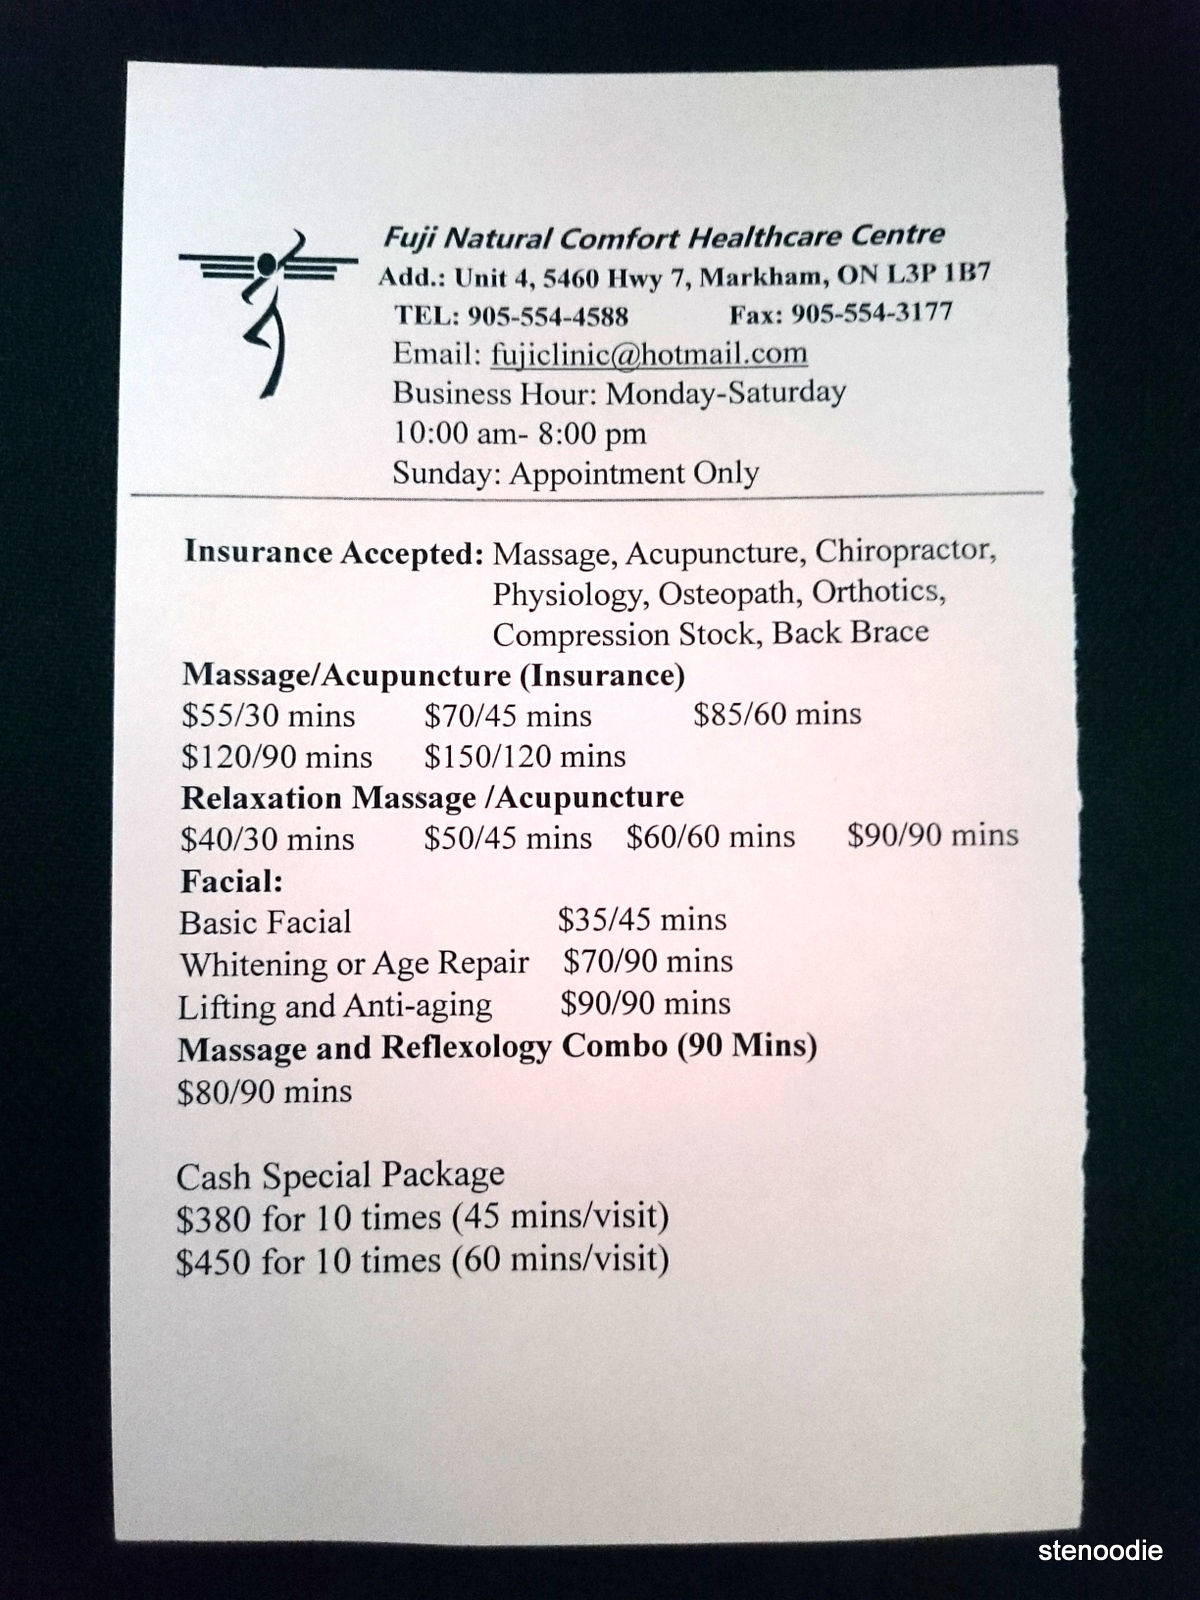 Fuji Natural Comfort Healthcare Centre prices